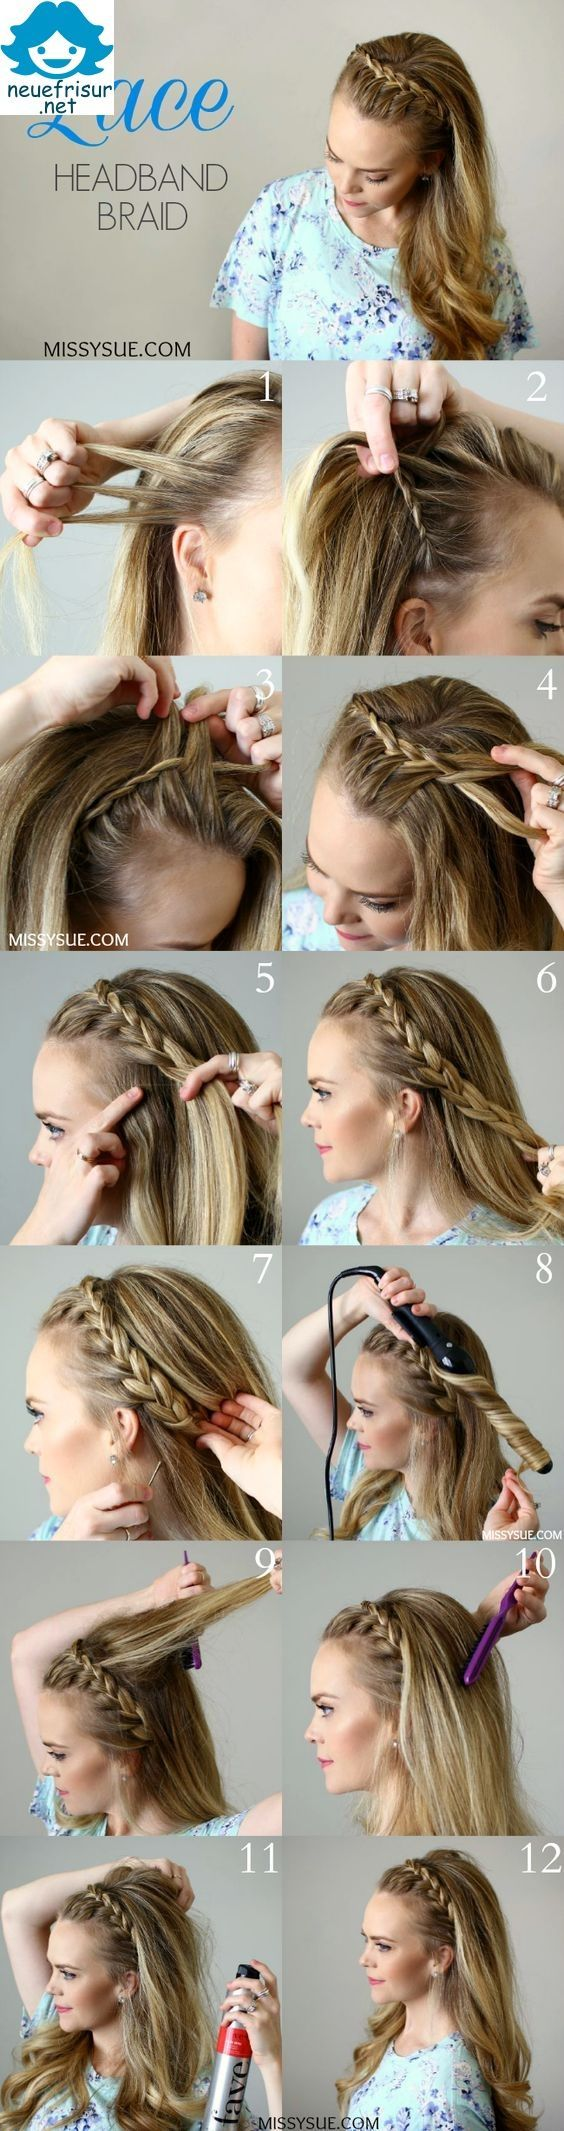 Lace Headband Braid Separate Hair In 2016 we will talk about the most preferred hairstyle. This year mesh models come frequently …